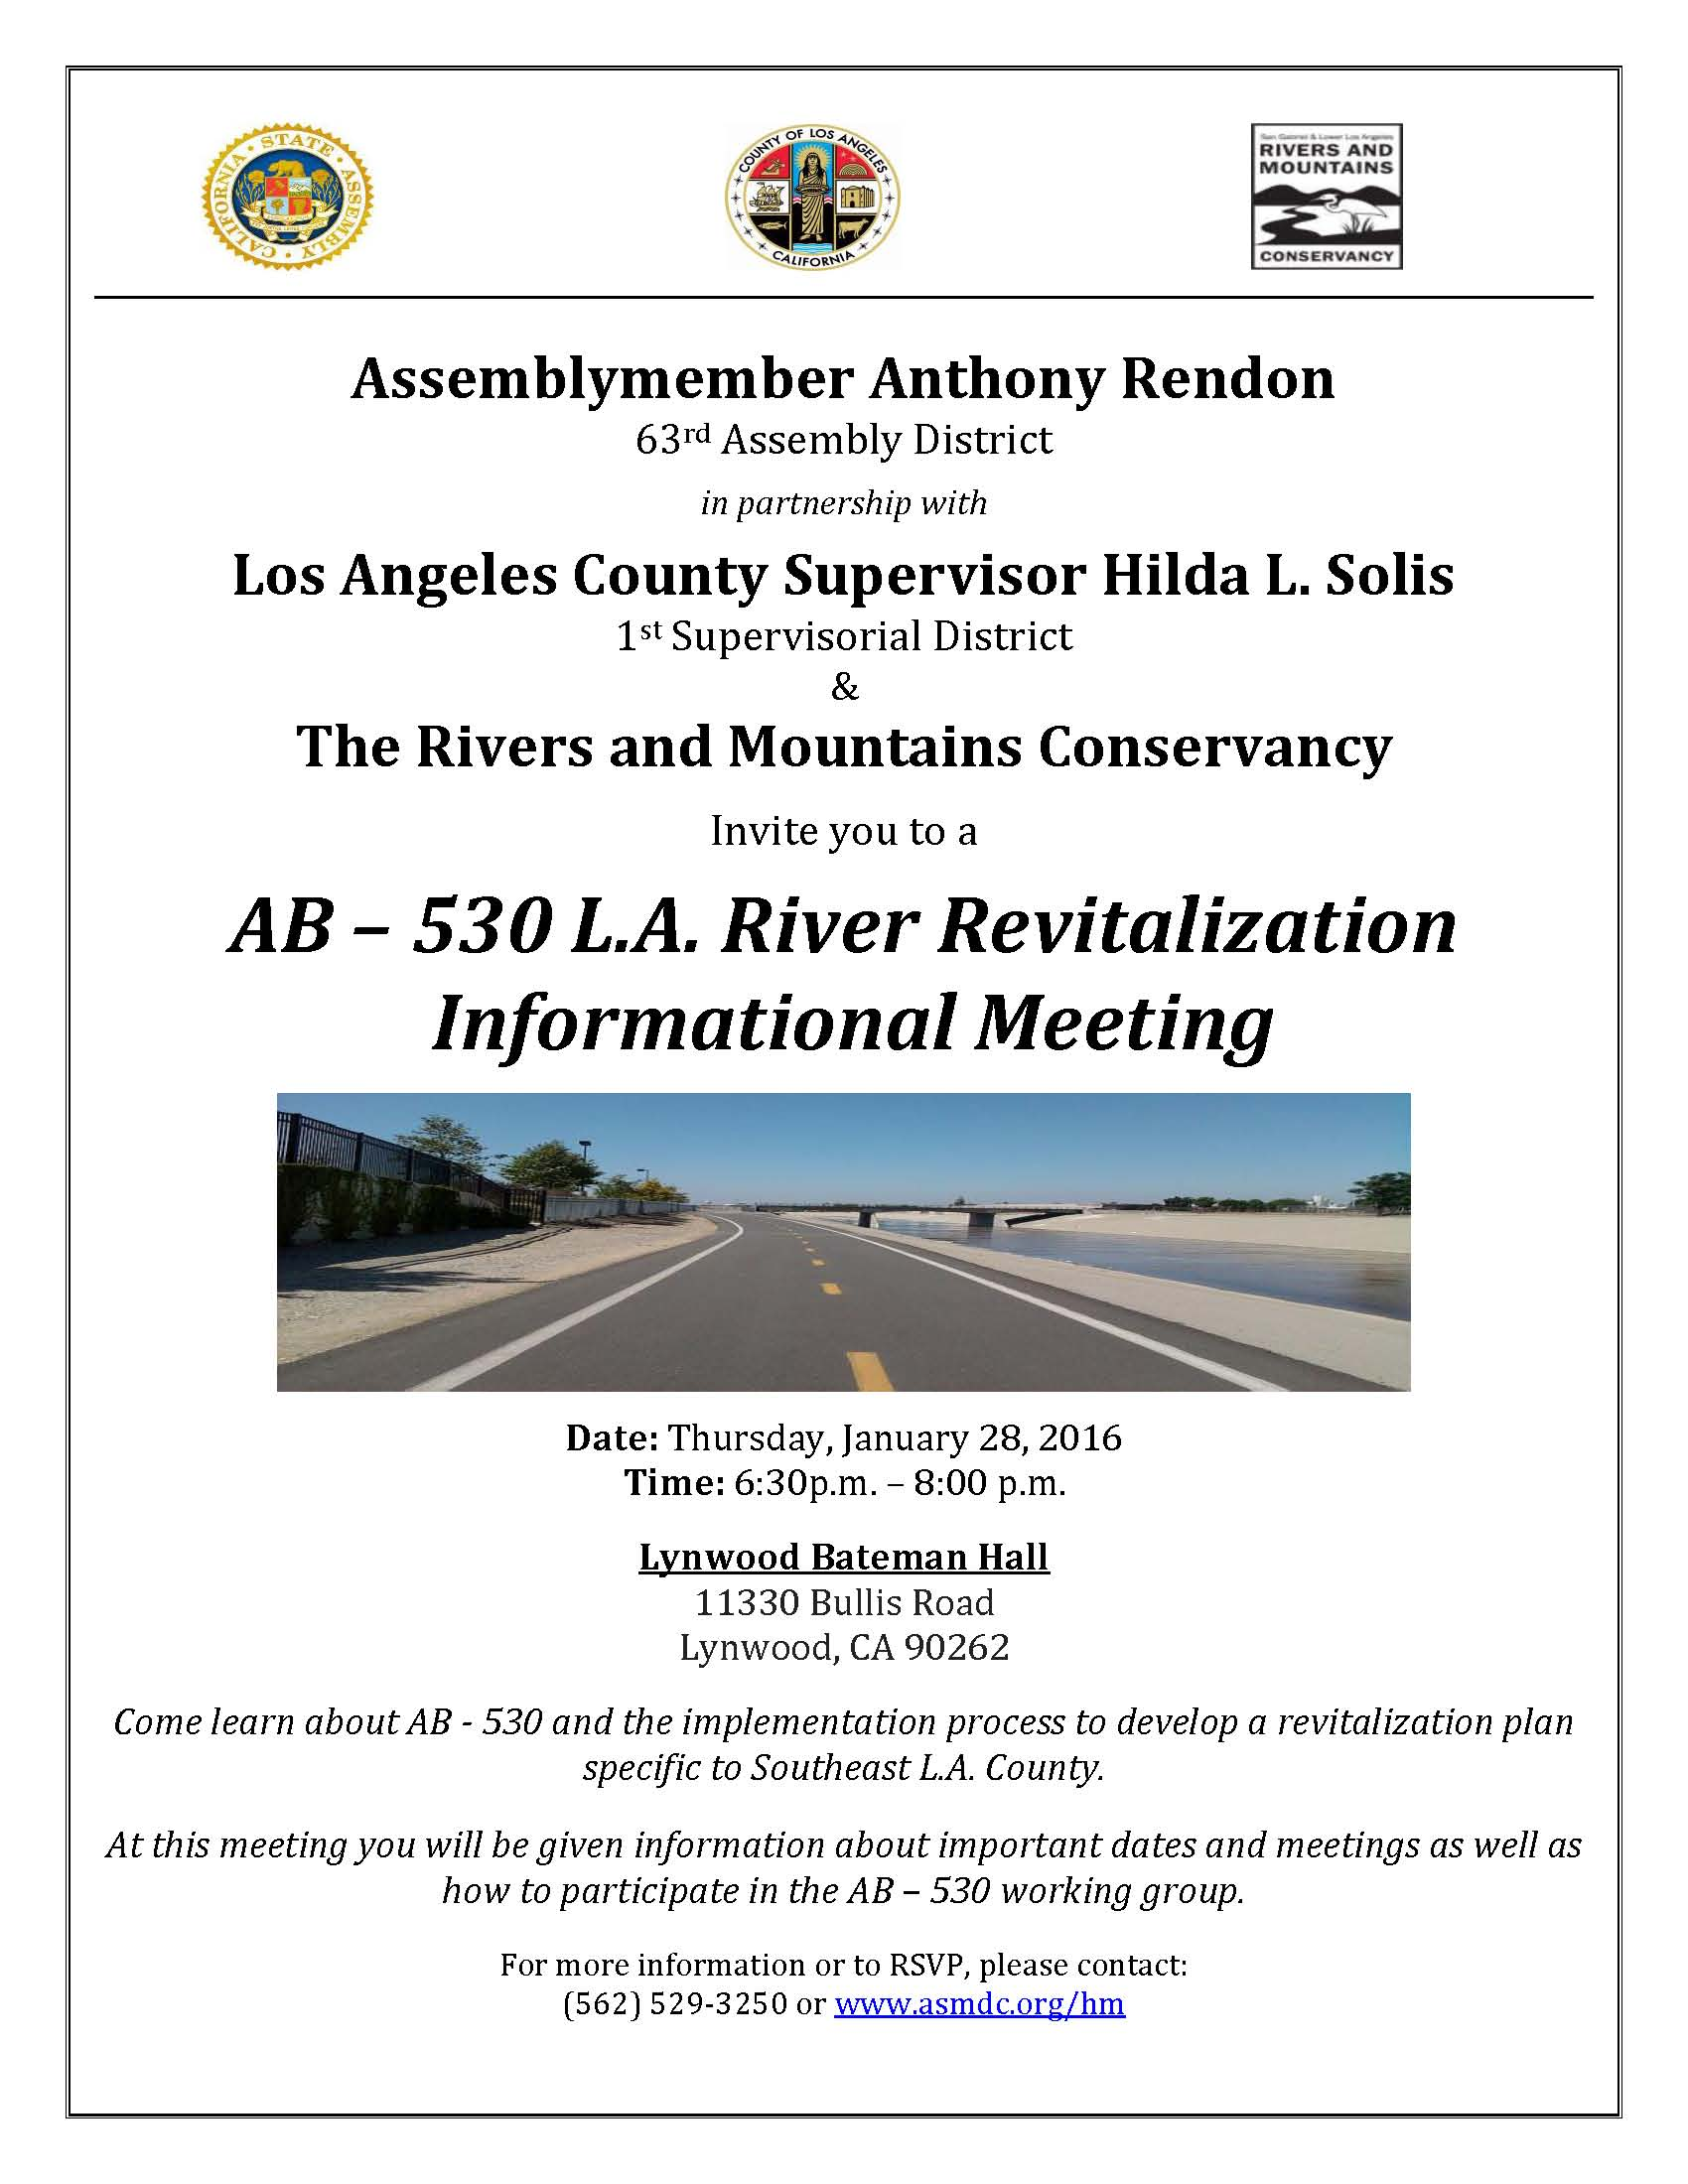 01.28.16_AB_530_Community_Meeting_Flyer.jpg